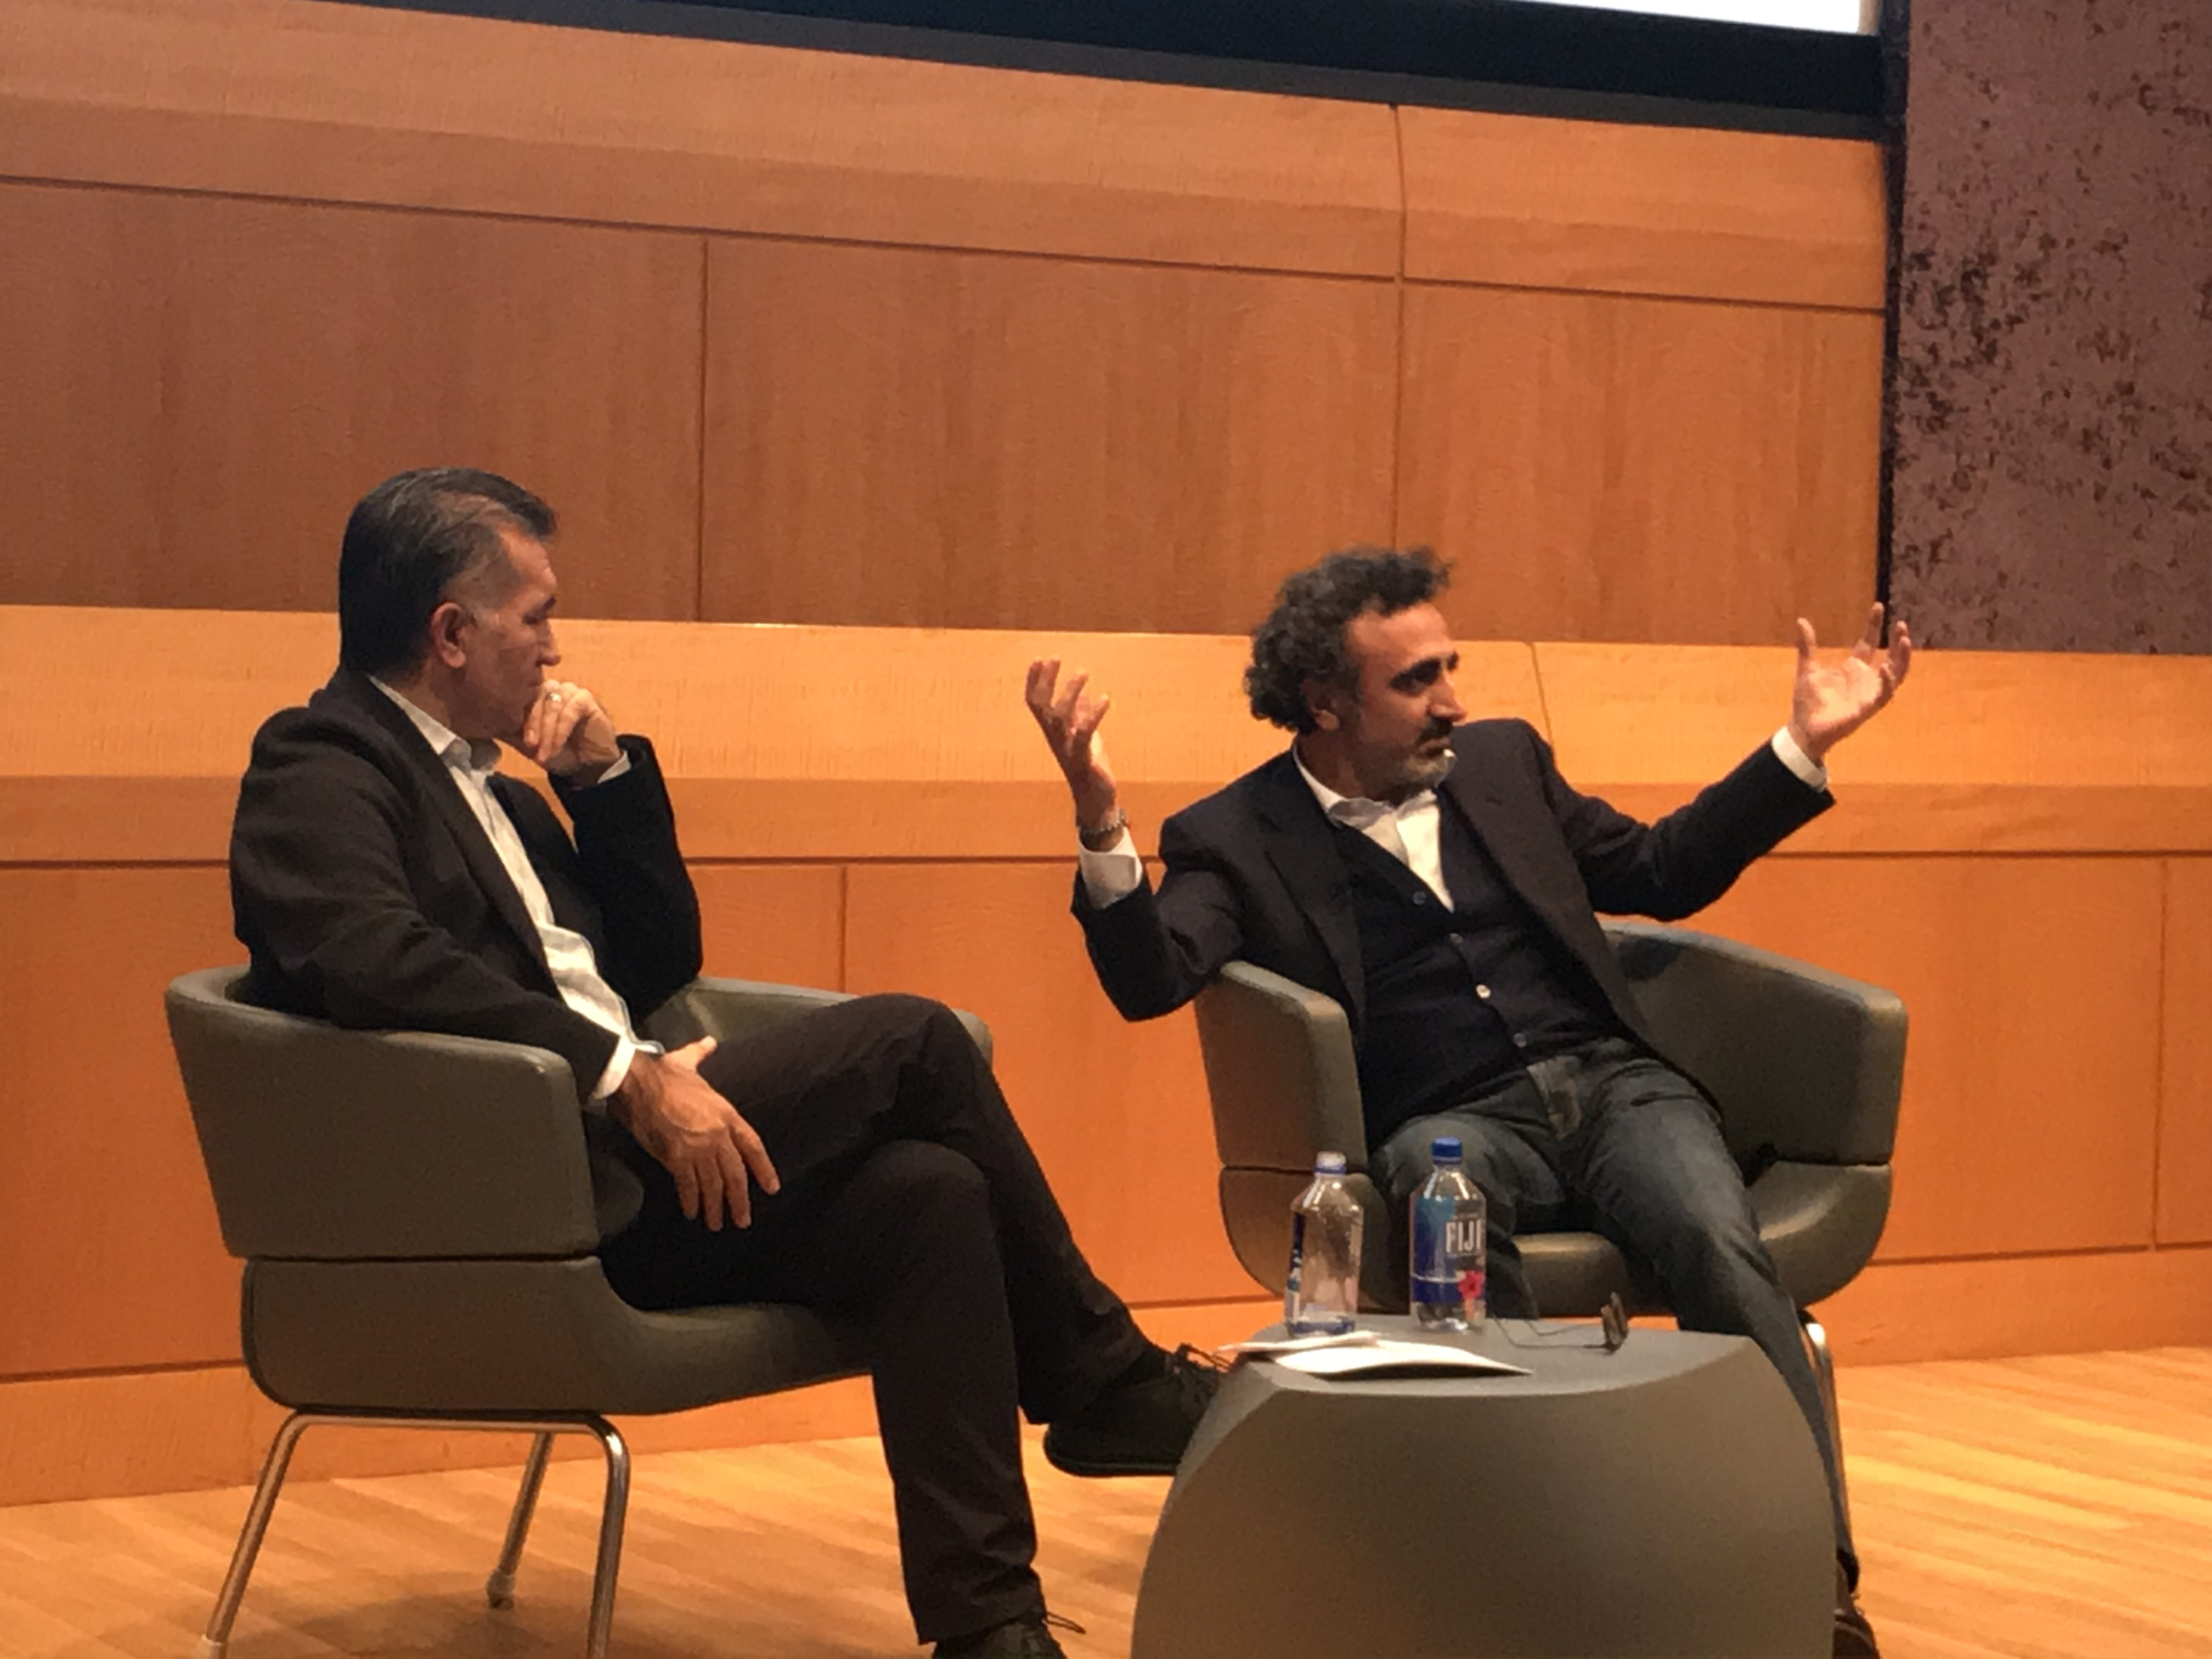 Chobani's founder Ulukaya trains young entrepreneurs: How to become a billionaire?